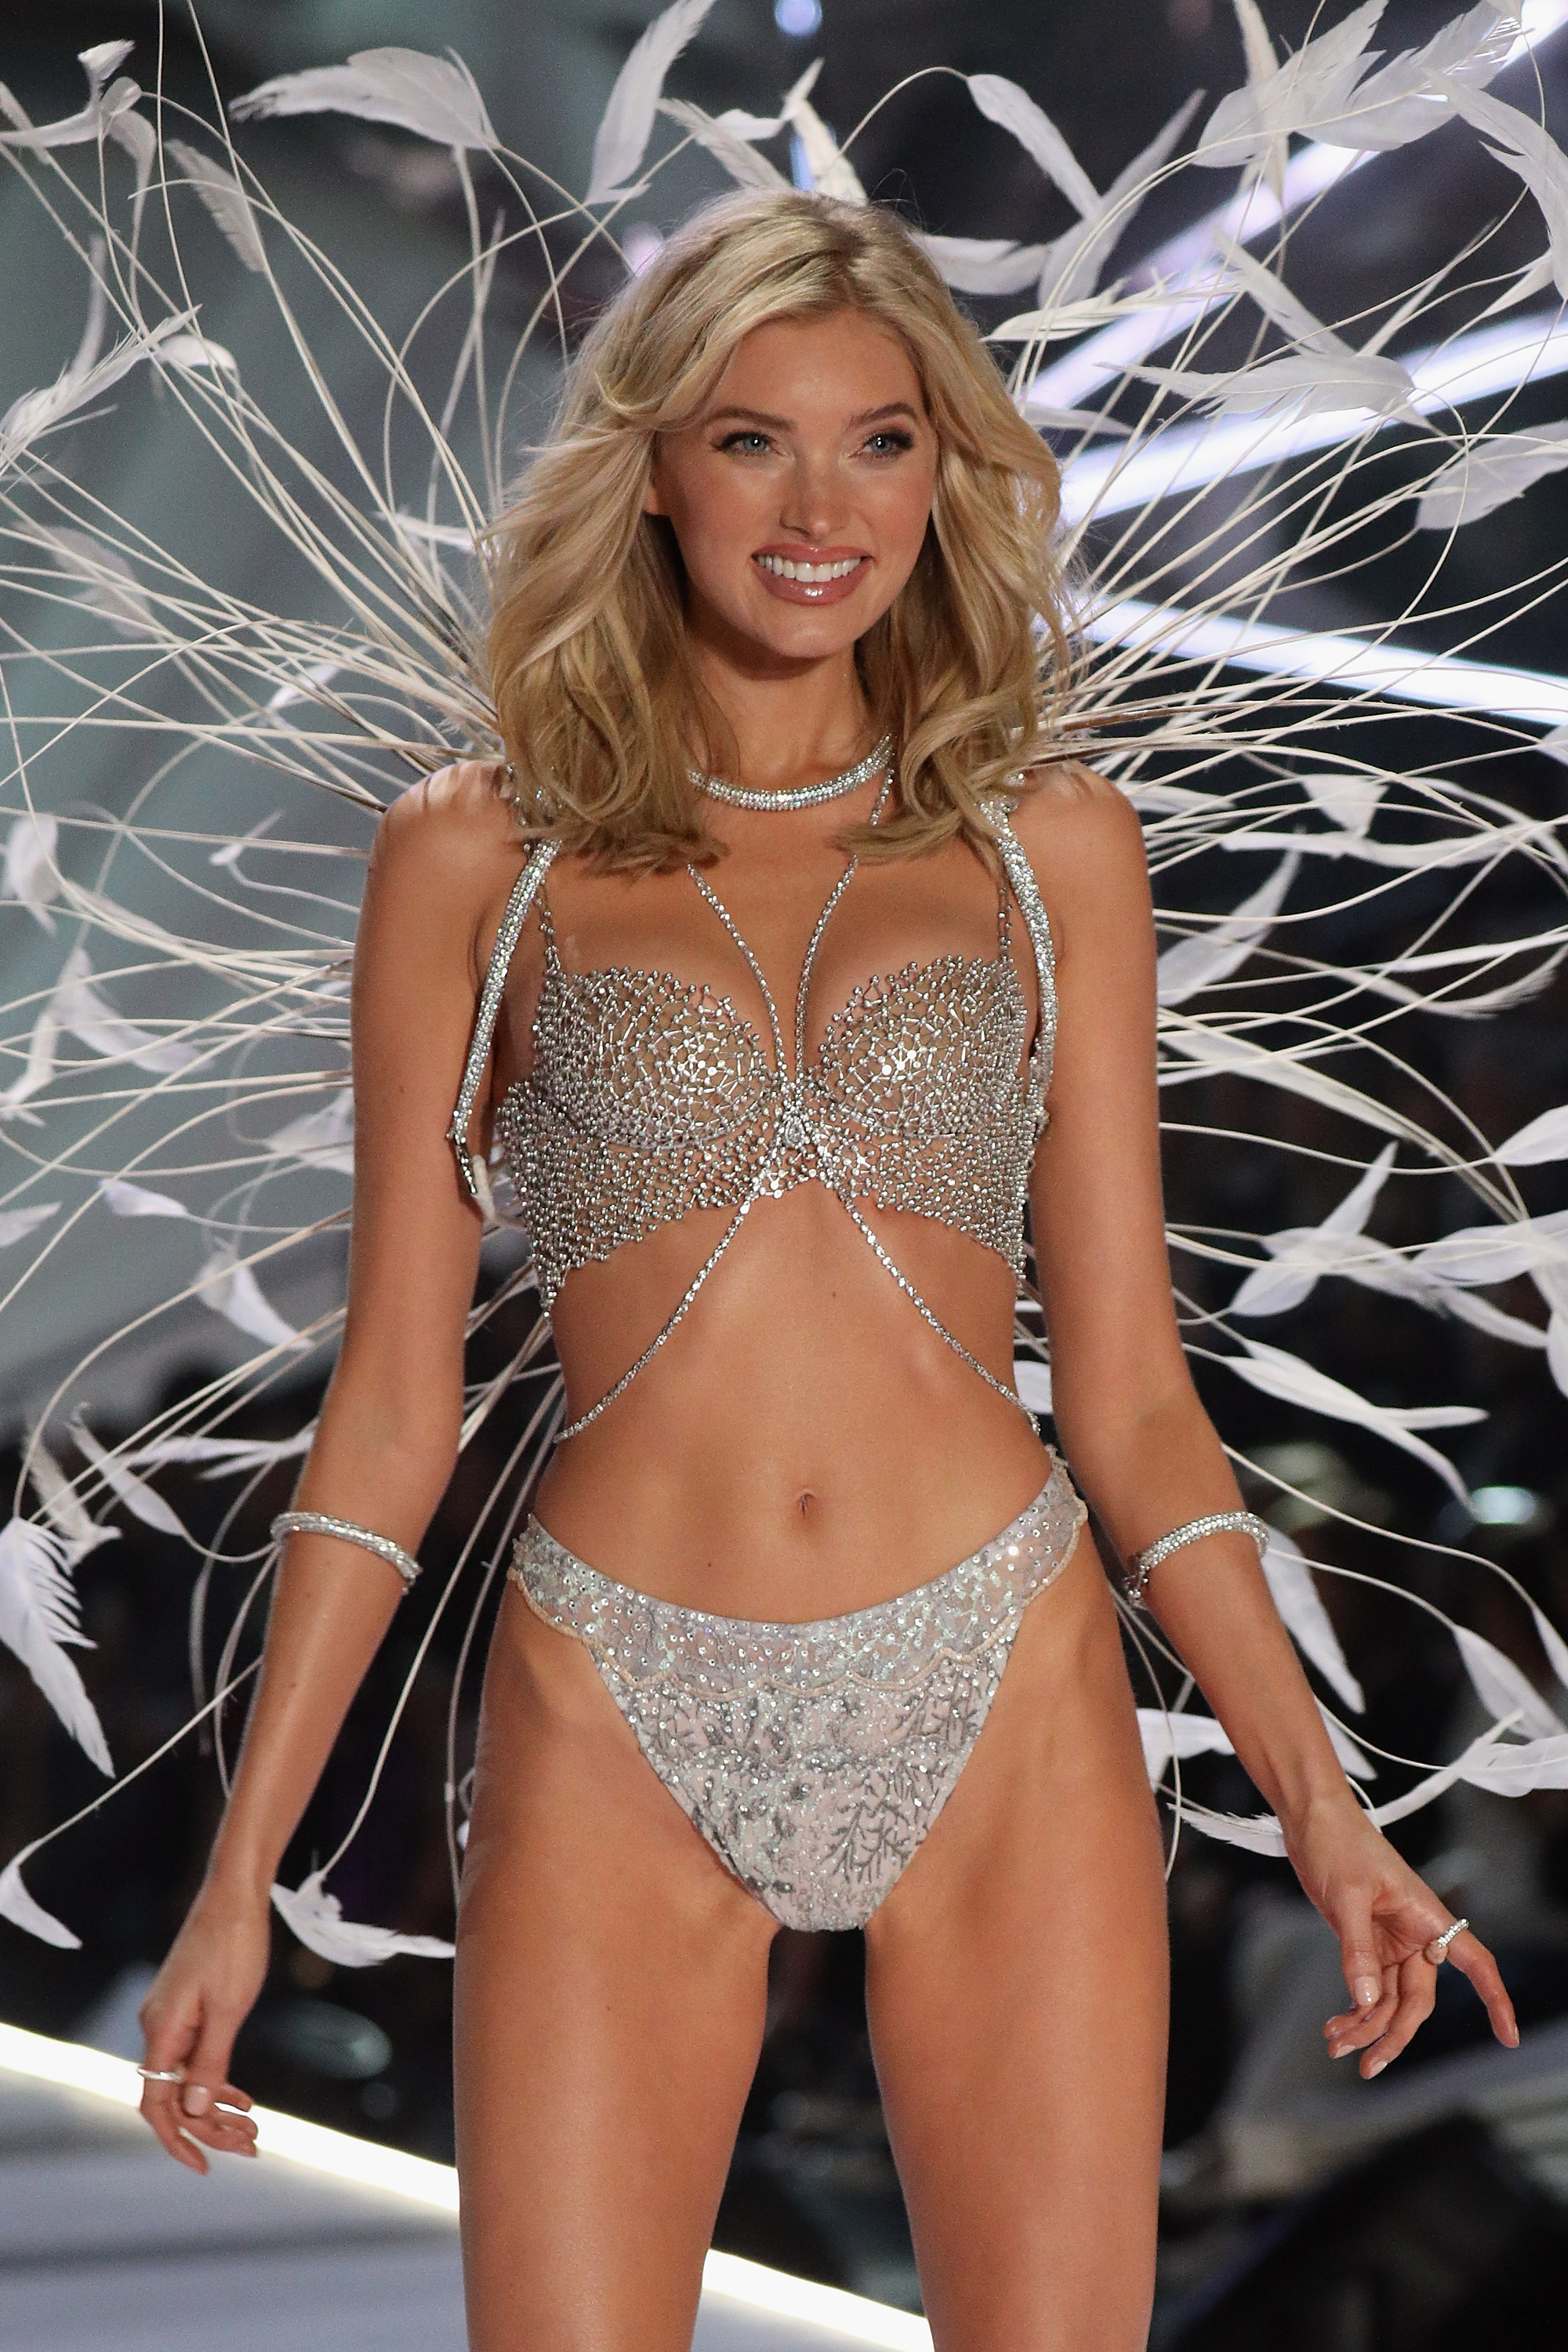 Swarovski Sparkles In The 2018 Victoria's Secret Fashion Show